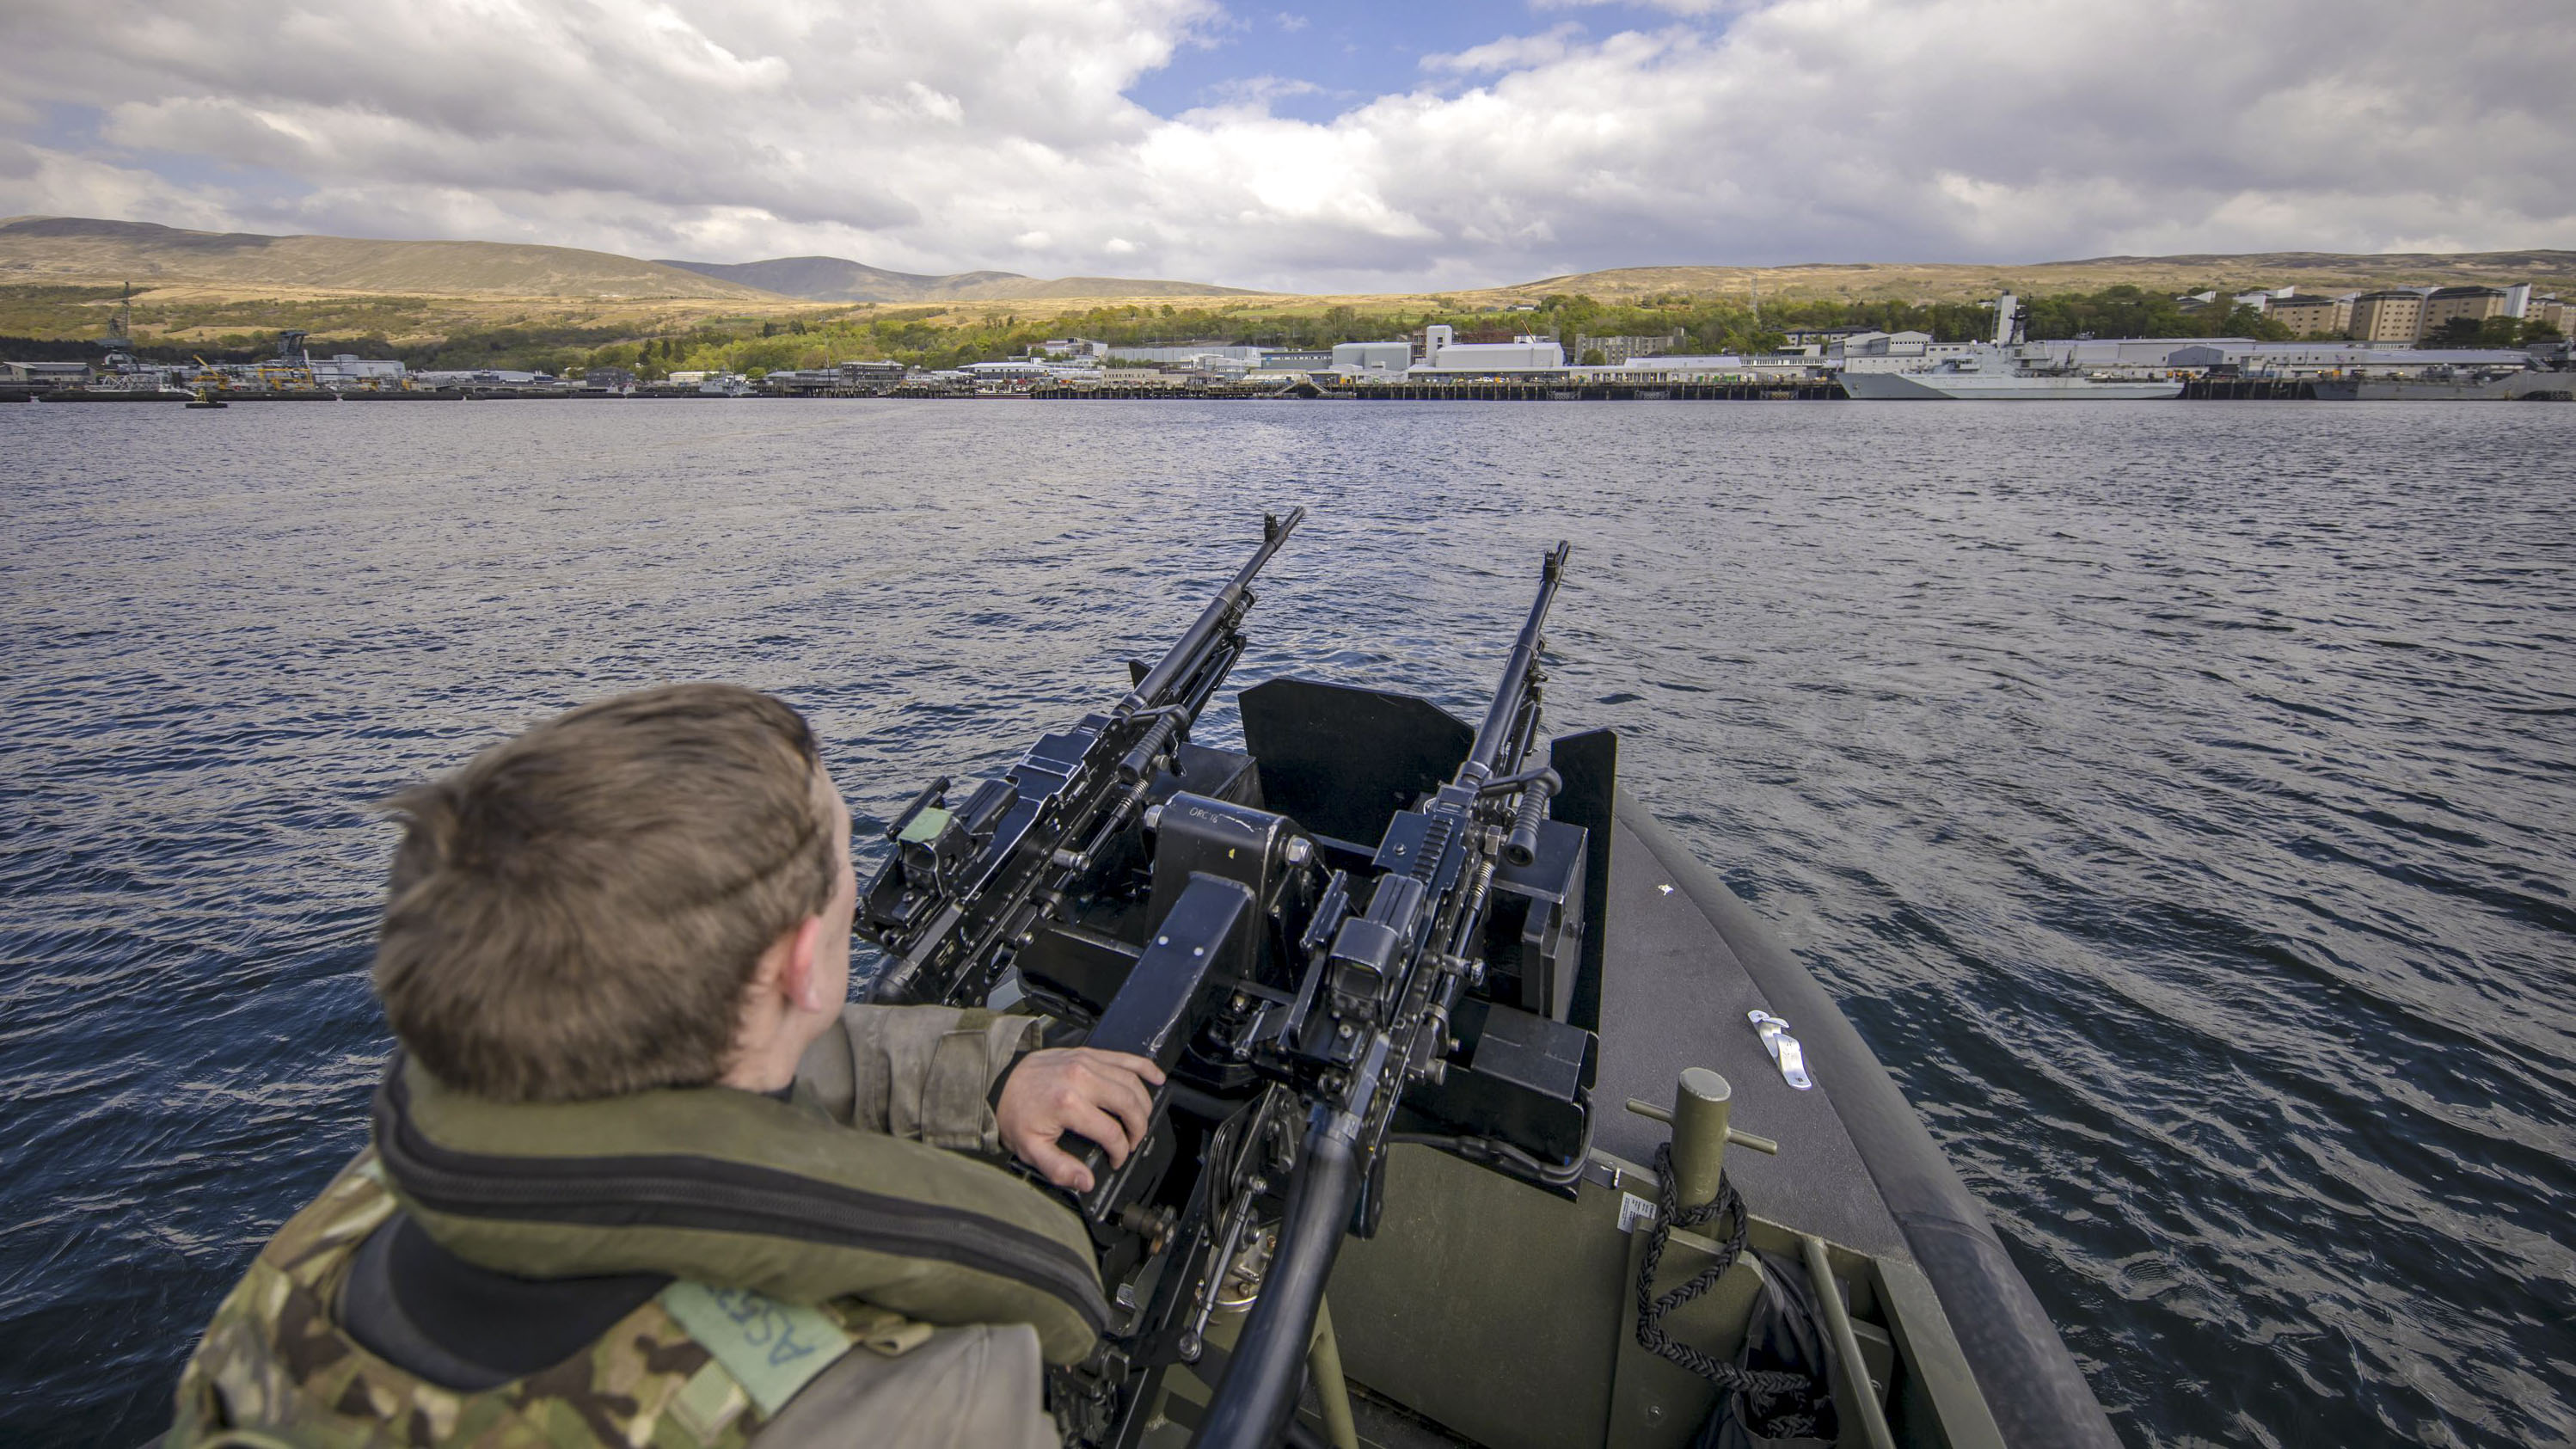 A Royal Marine patrols the waters at HMNB Clyde, which is the home of the UK's Trident nuclear deterrent, Faslane, west of Glasgow, Scotland on April 29, 2019. - A tour of the submarine was arranged to mark fifty years of the continuous, at sea nuclear deterrent. (JAMES GLOSSOP/AFP/Getty Images)